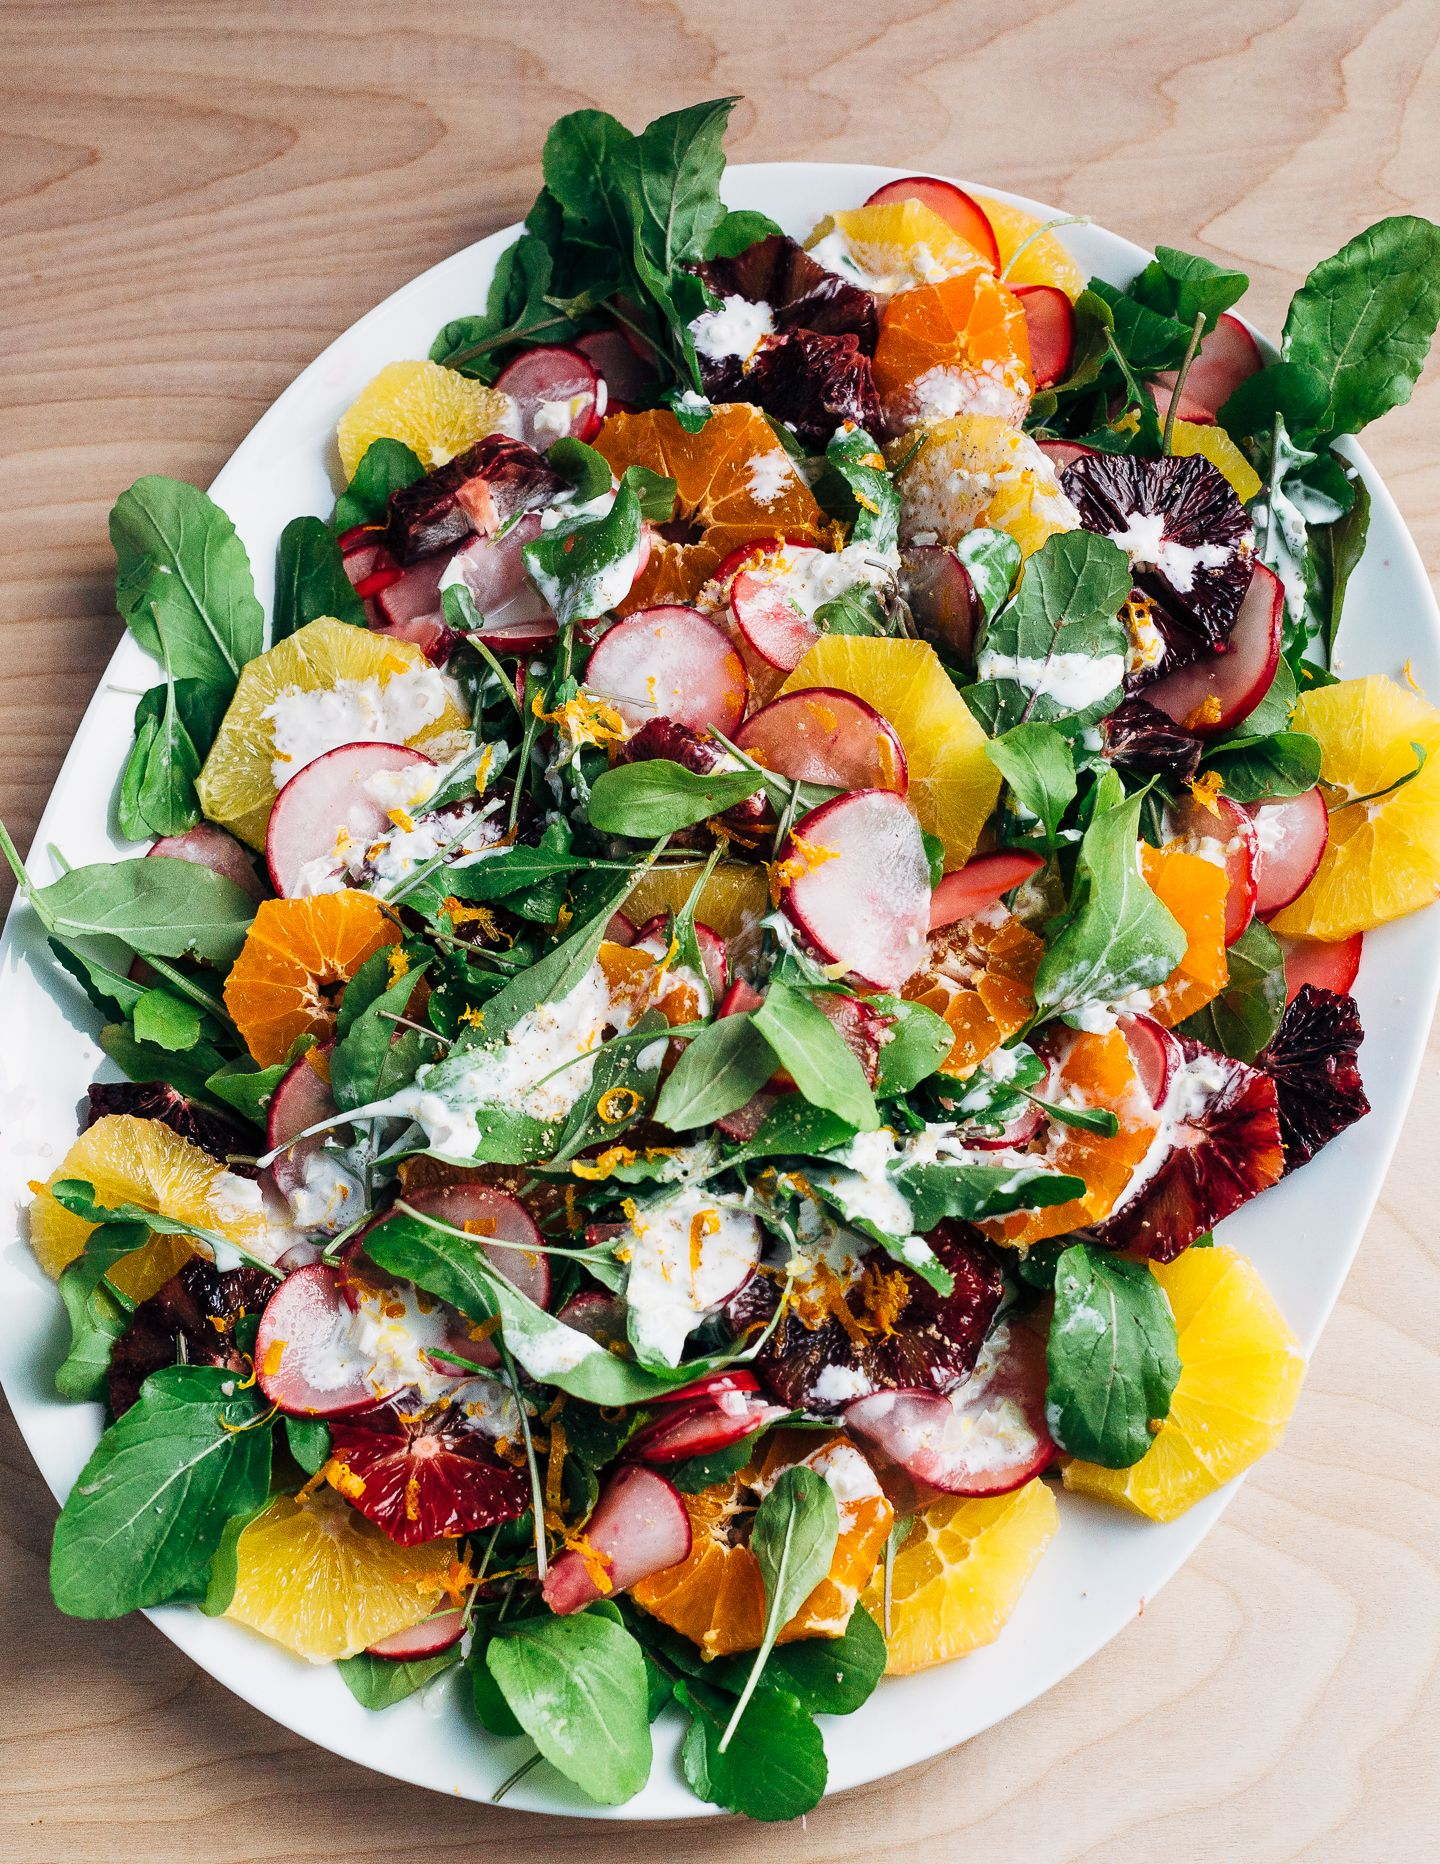 Radish Orange And Arugula Salad With Buttermilk Ranch Dressing Recipe Vegetarian Salad Recipes Arugula Salad Seasoning Recipes